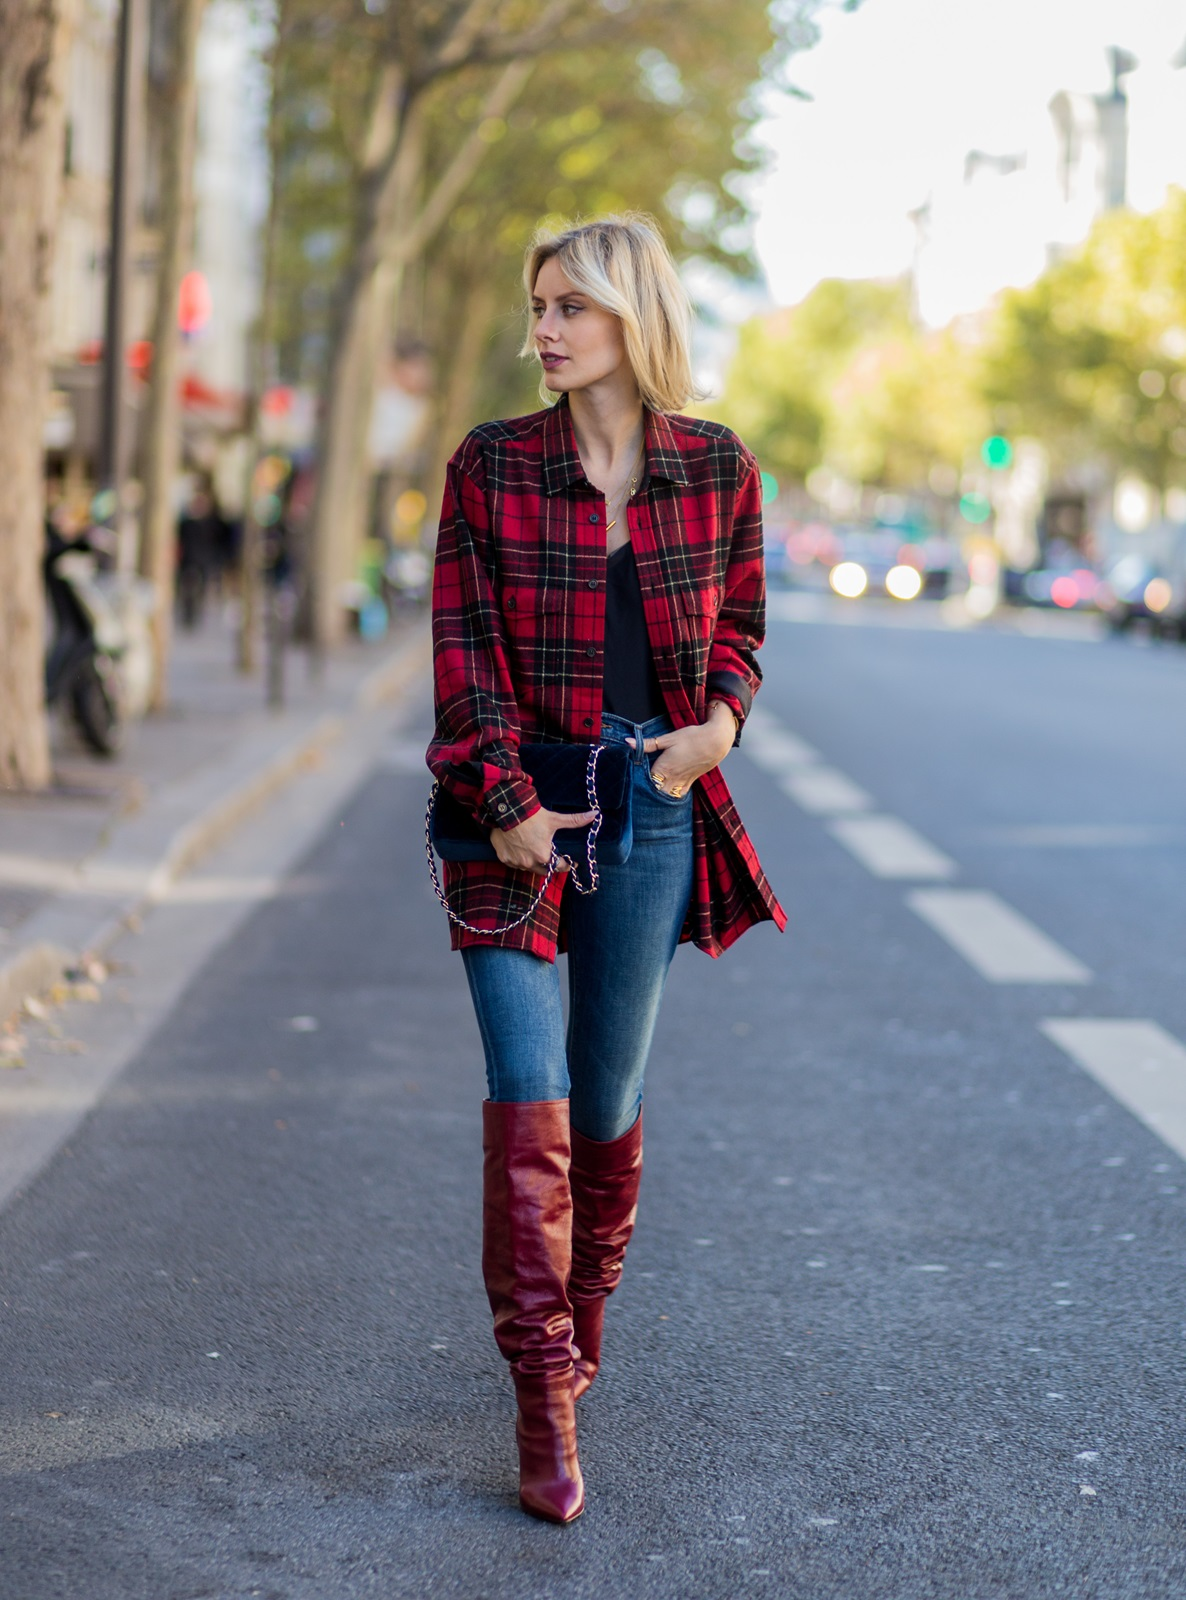 PARIS, FRANCE - OCTOBER 04: German fashion blogger Lisa Hahnbueck (@lisarvd) wearing Saint Laurent checked red Oversize Shirt, JBrand Highwaist Jeans, navy Chanel bag red Zara Overknees on October 4, 2016 in Paris, France. (Photo by Christian Vierig/Getty Images) *** Local Caption *** Lisa Hahnbueck